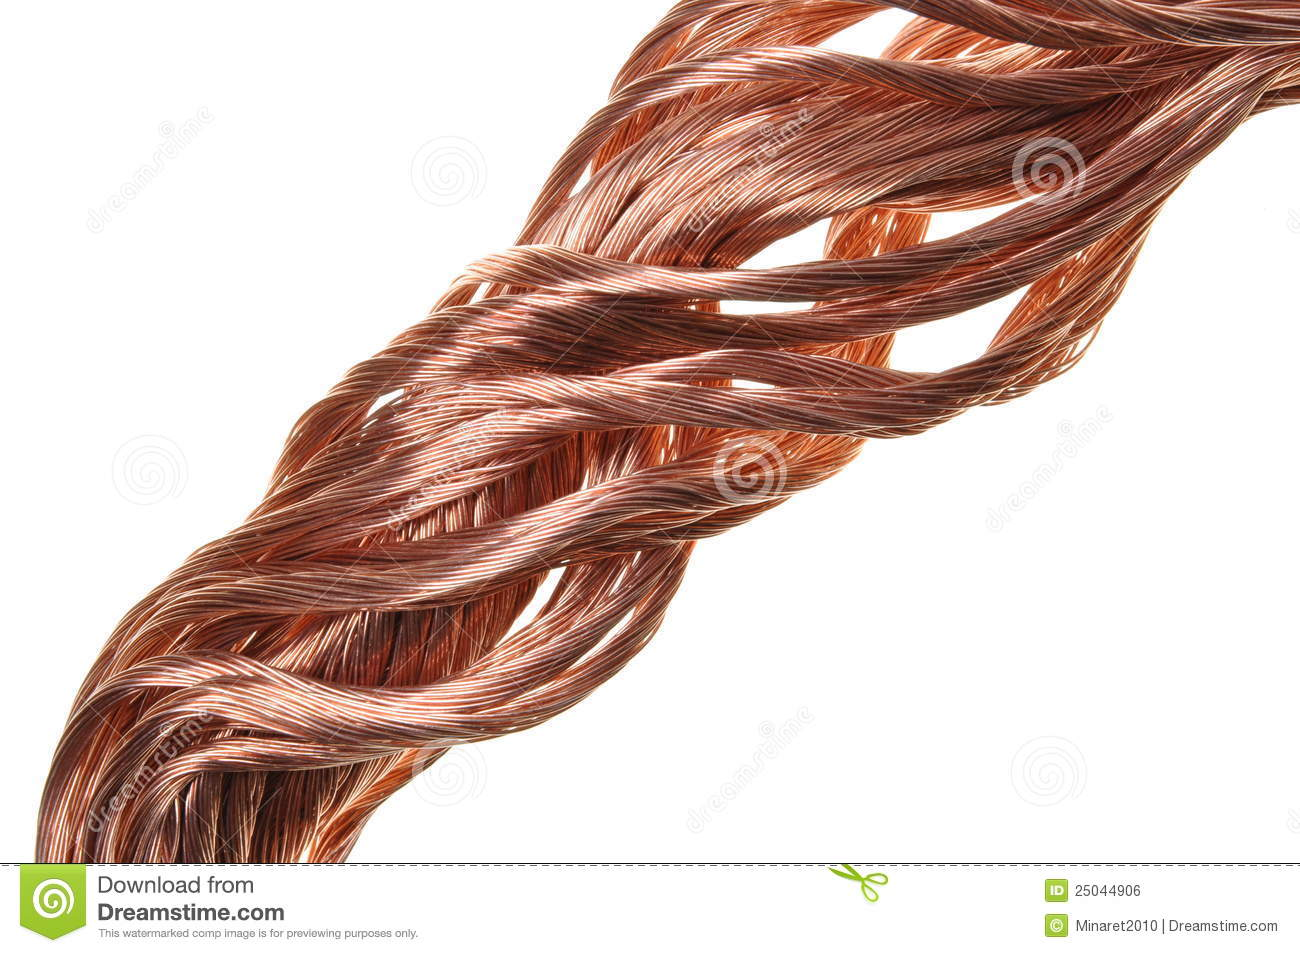 Copper Cable Market Share : Copper wire industry development royalty free stock image